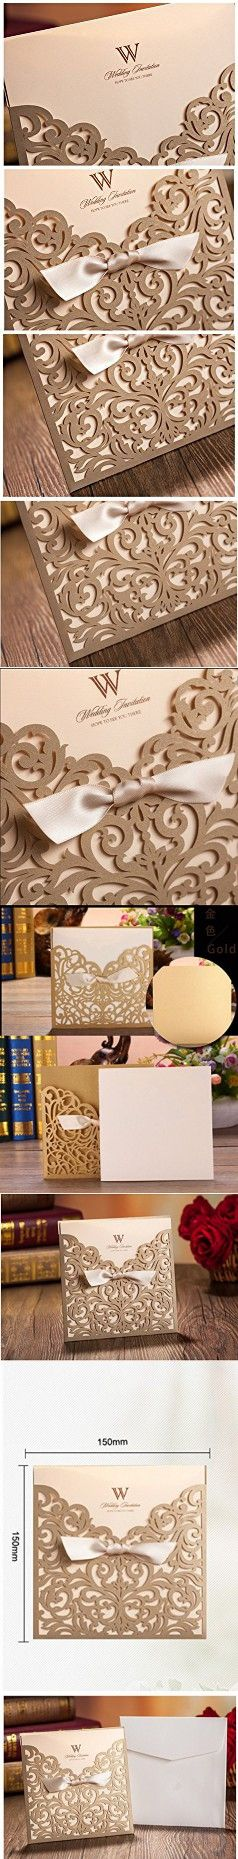 """Graces Dawn 100pcs Laser-cut Lace Flower Pattern Wedding Invitations Cards(set of 100pcs) and Blank Cards and Envelopes 6 x 6"""" - Value Pack (Champagne Gold)"""